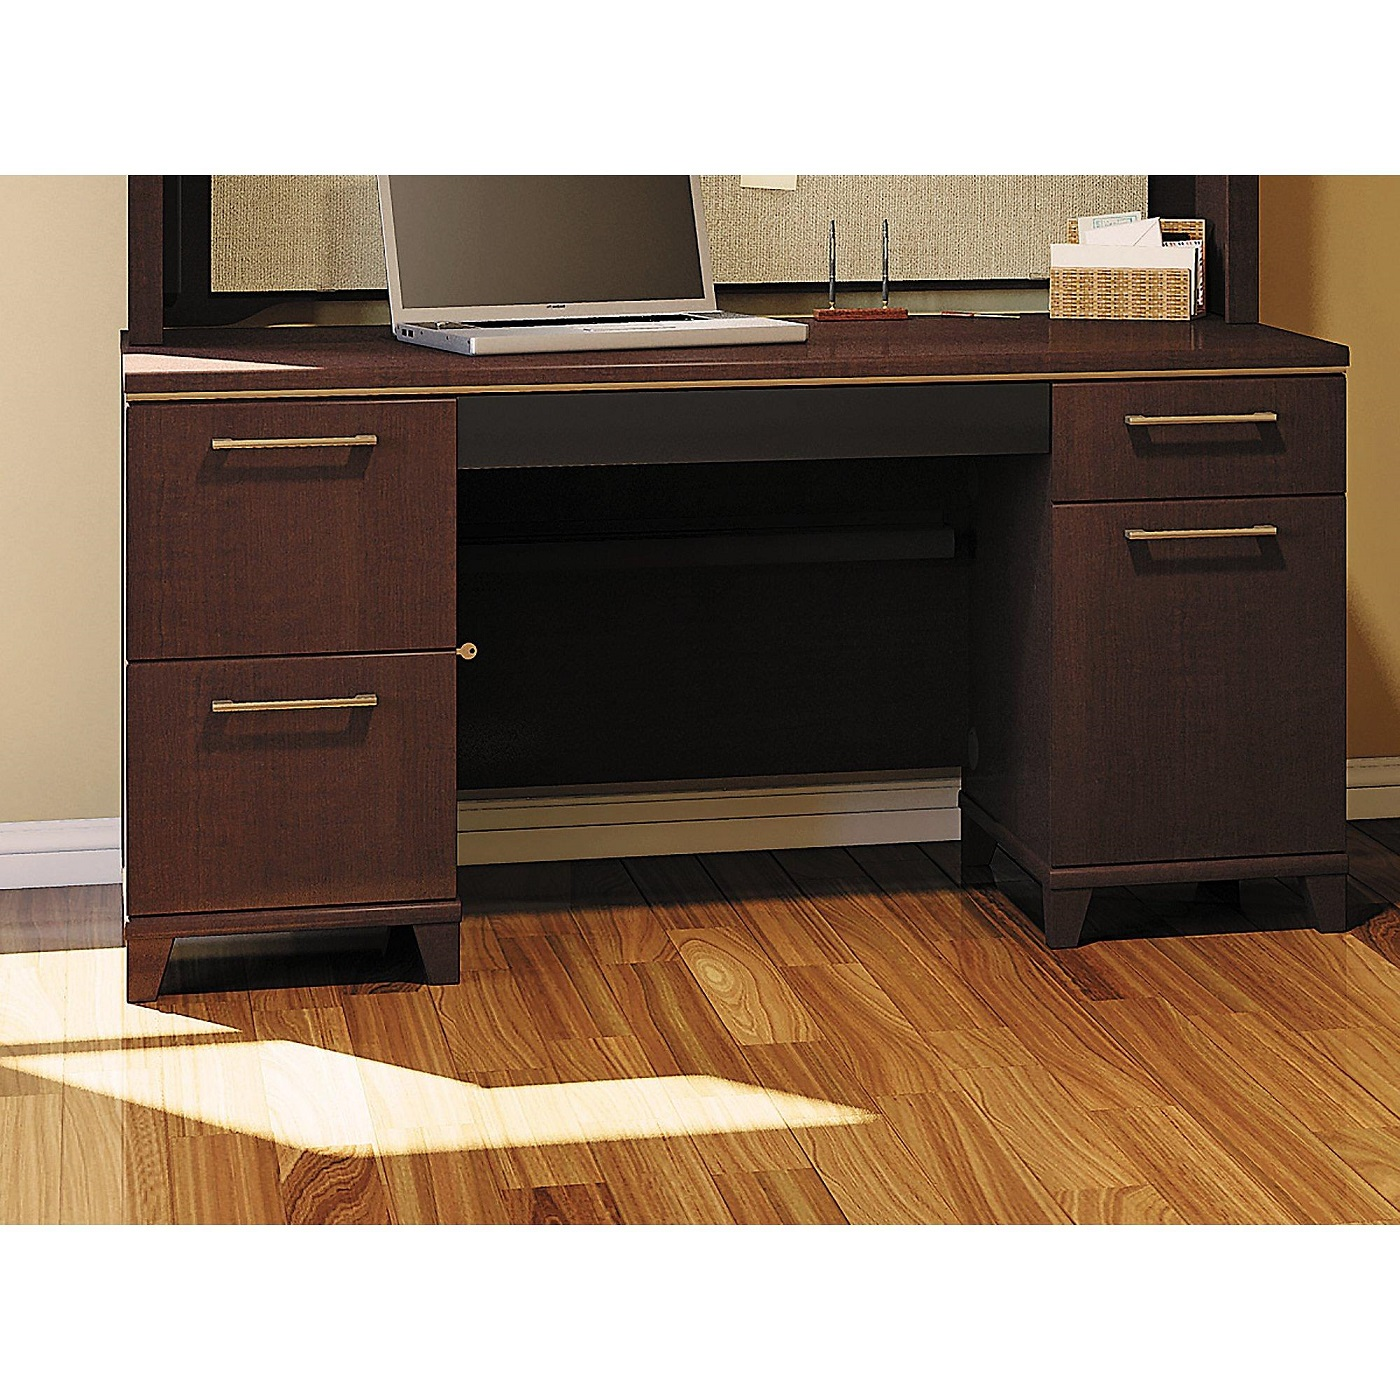 <b><font color=#c60>BUSH BUSINESS FURNITURE ENTERPRISE MOCHA CHERRY 60W OFFICE DESK WITH 2 PEDESTALS</b></font>